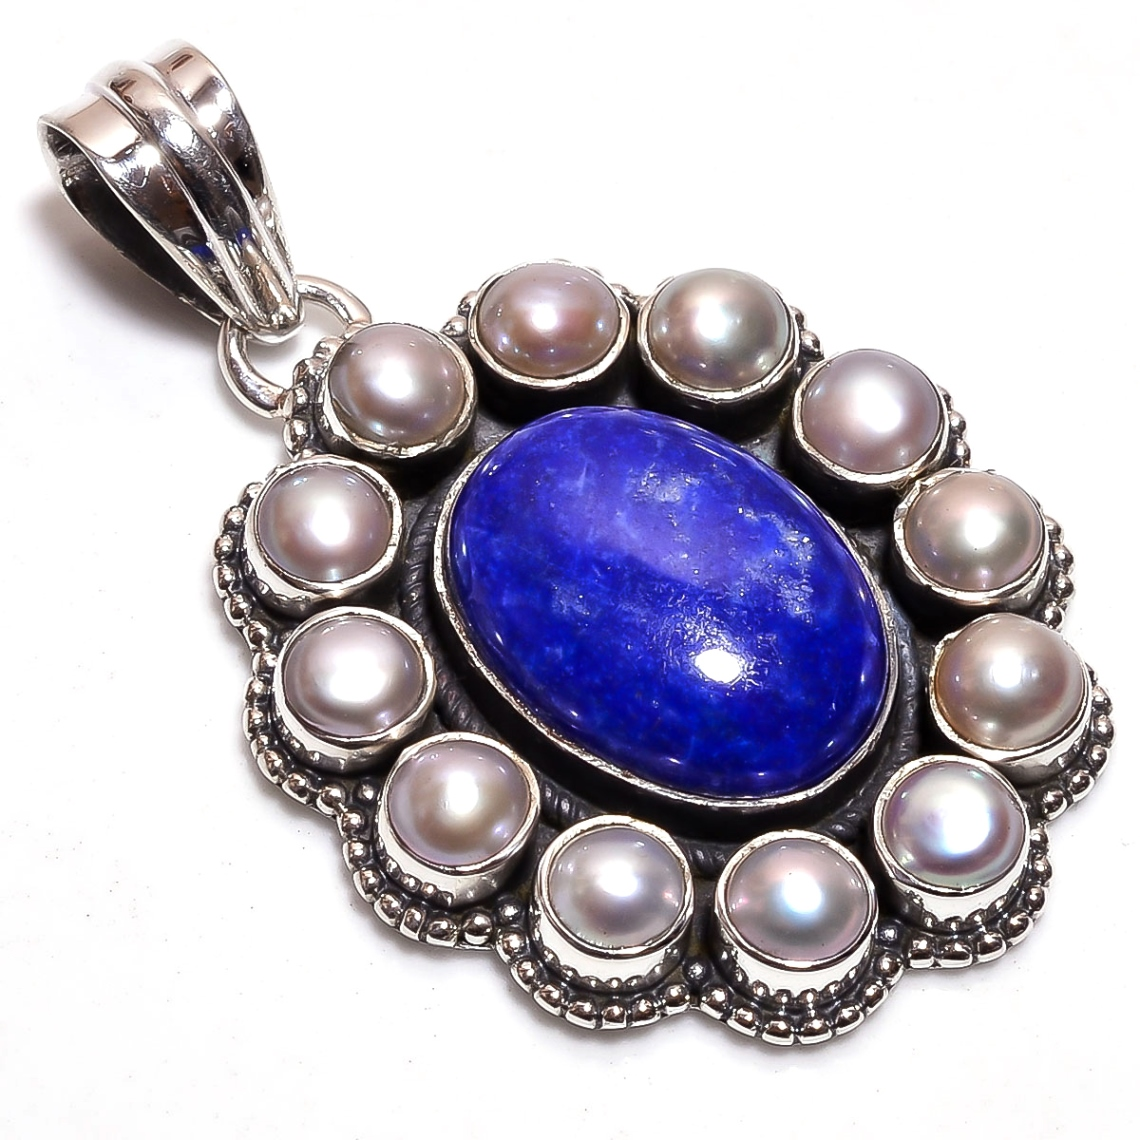 Lapis Pearl Gemstone 925 Sterling Silver Pendant